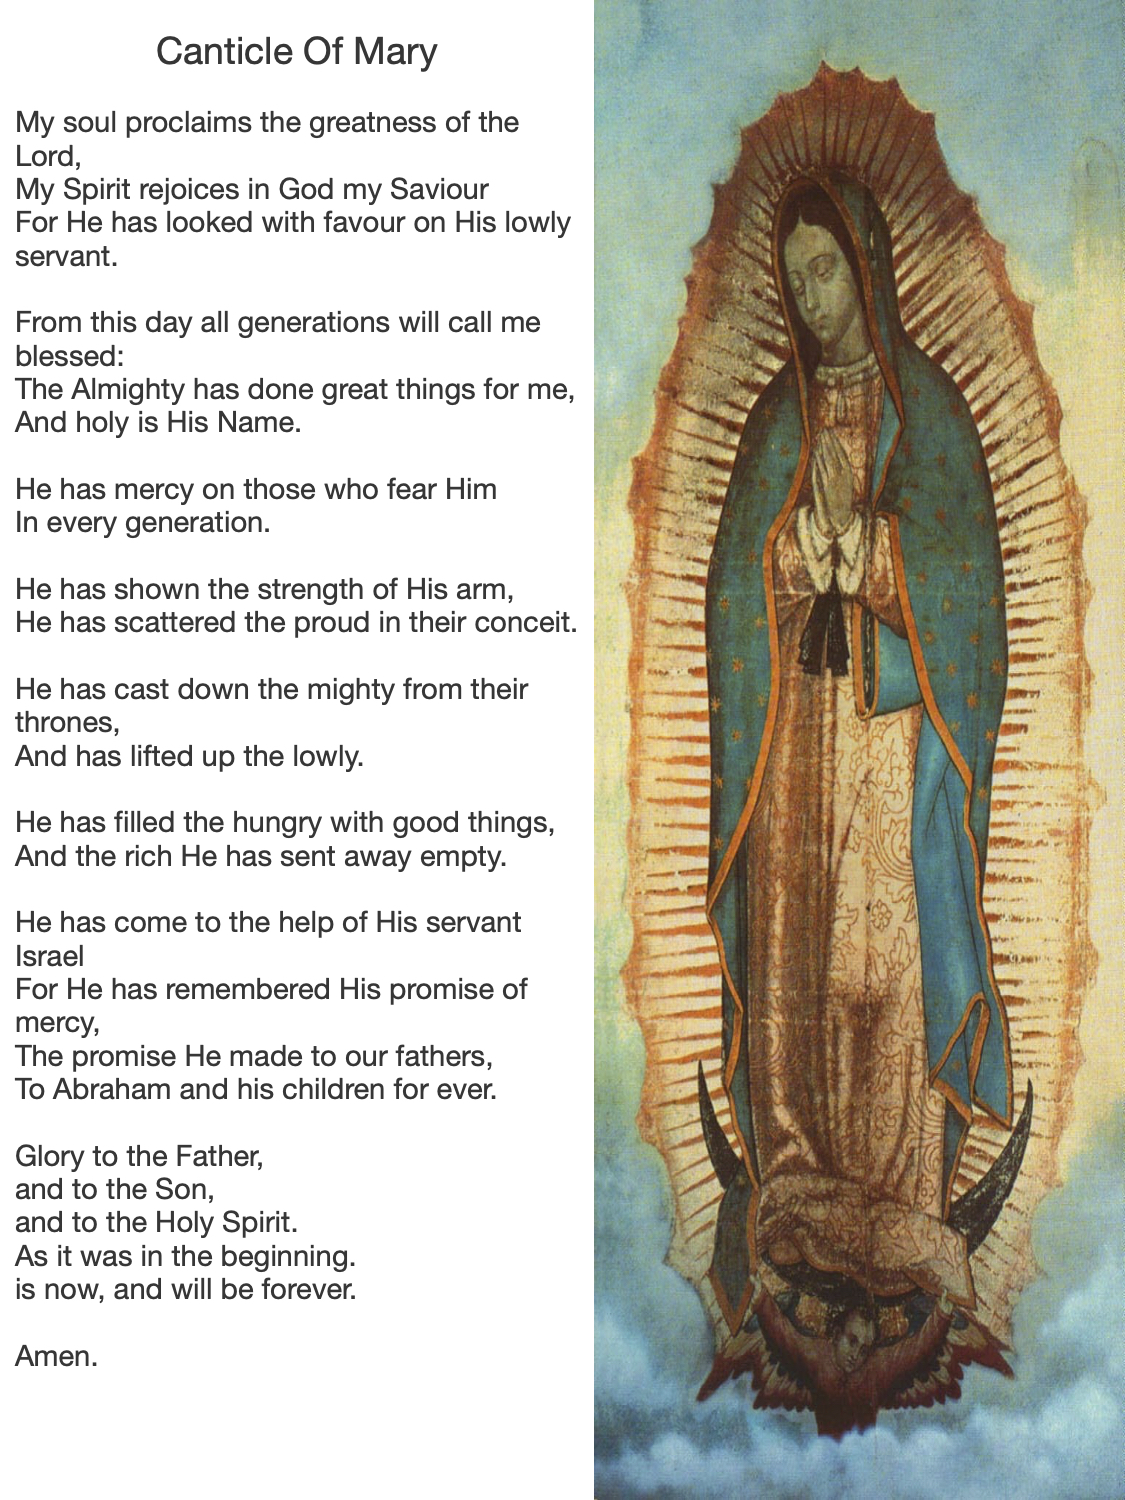 Canticle of Mother Mary